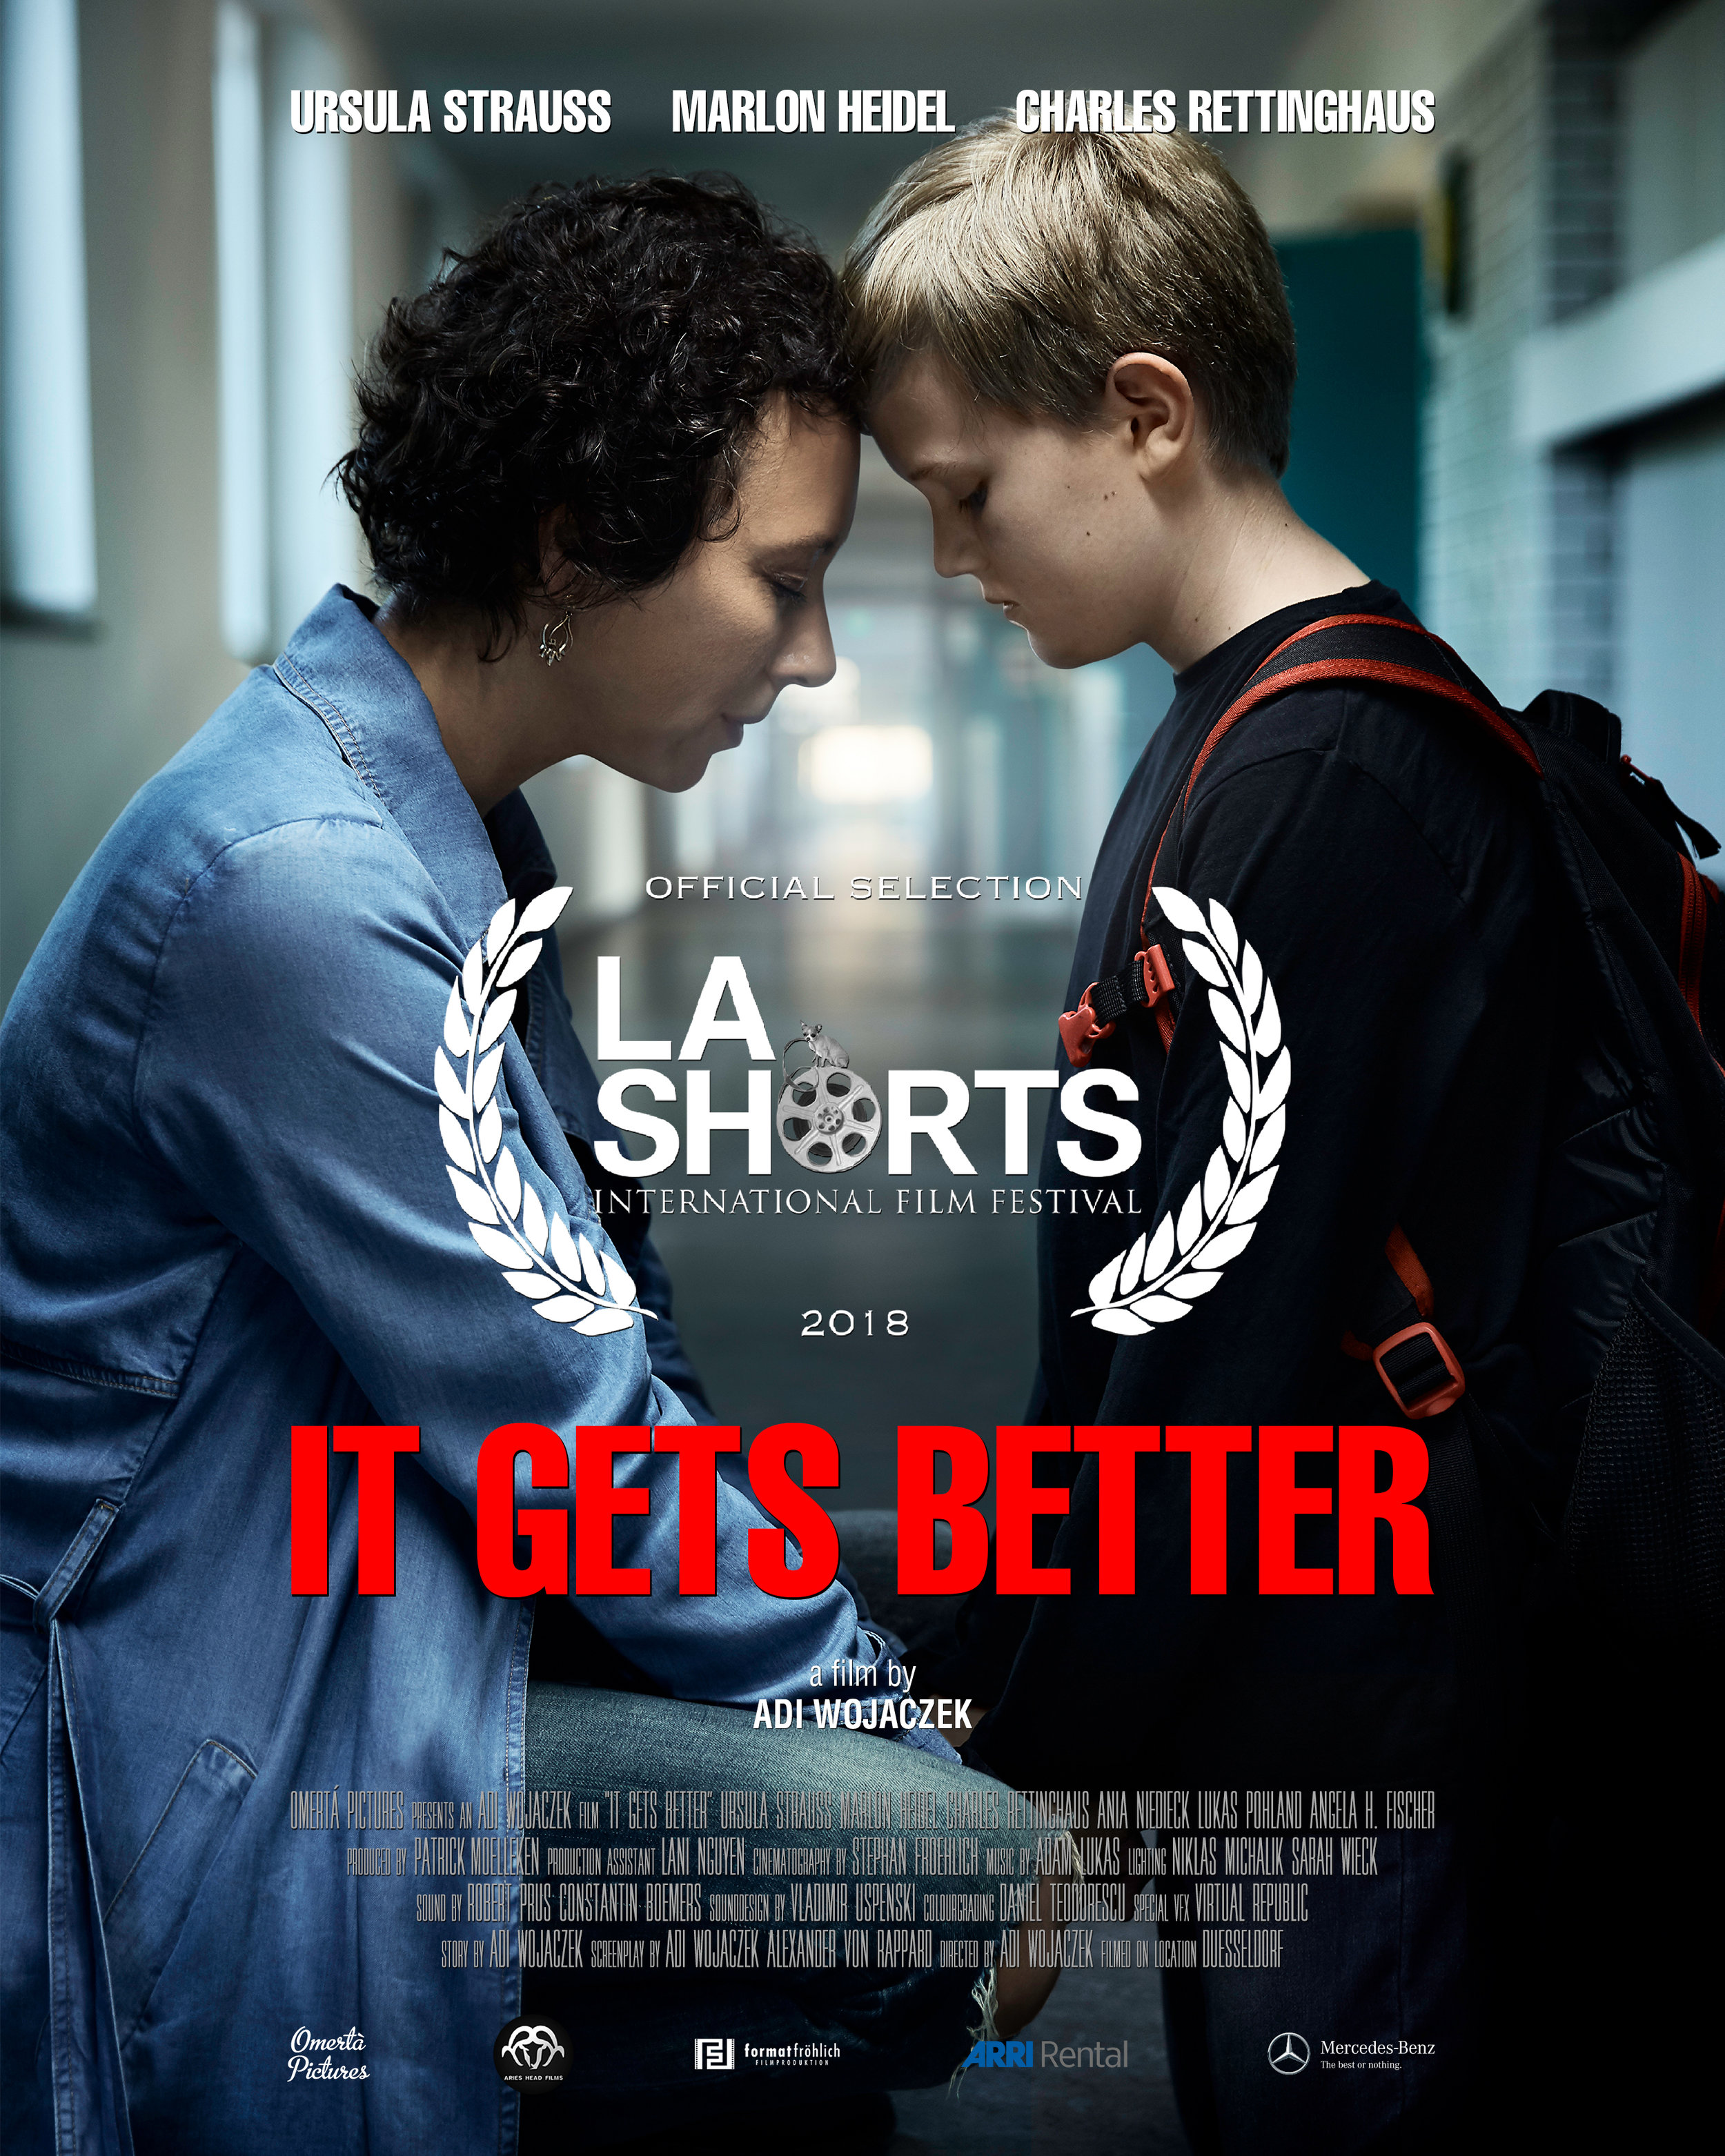 It gets better (2018) - Oscar qualifying Short Film by Adi Wojaczek. Music by Adam Lukas.A film about a mother fighting for her son, who is a victim of Cyberbullying.Winner: Best Drama @LA Shorts International Film FestivalHear the Score on Soundcloud:IT GETS BETTER OST by ADAM LUKAS